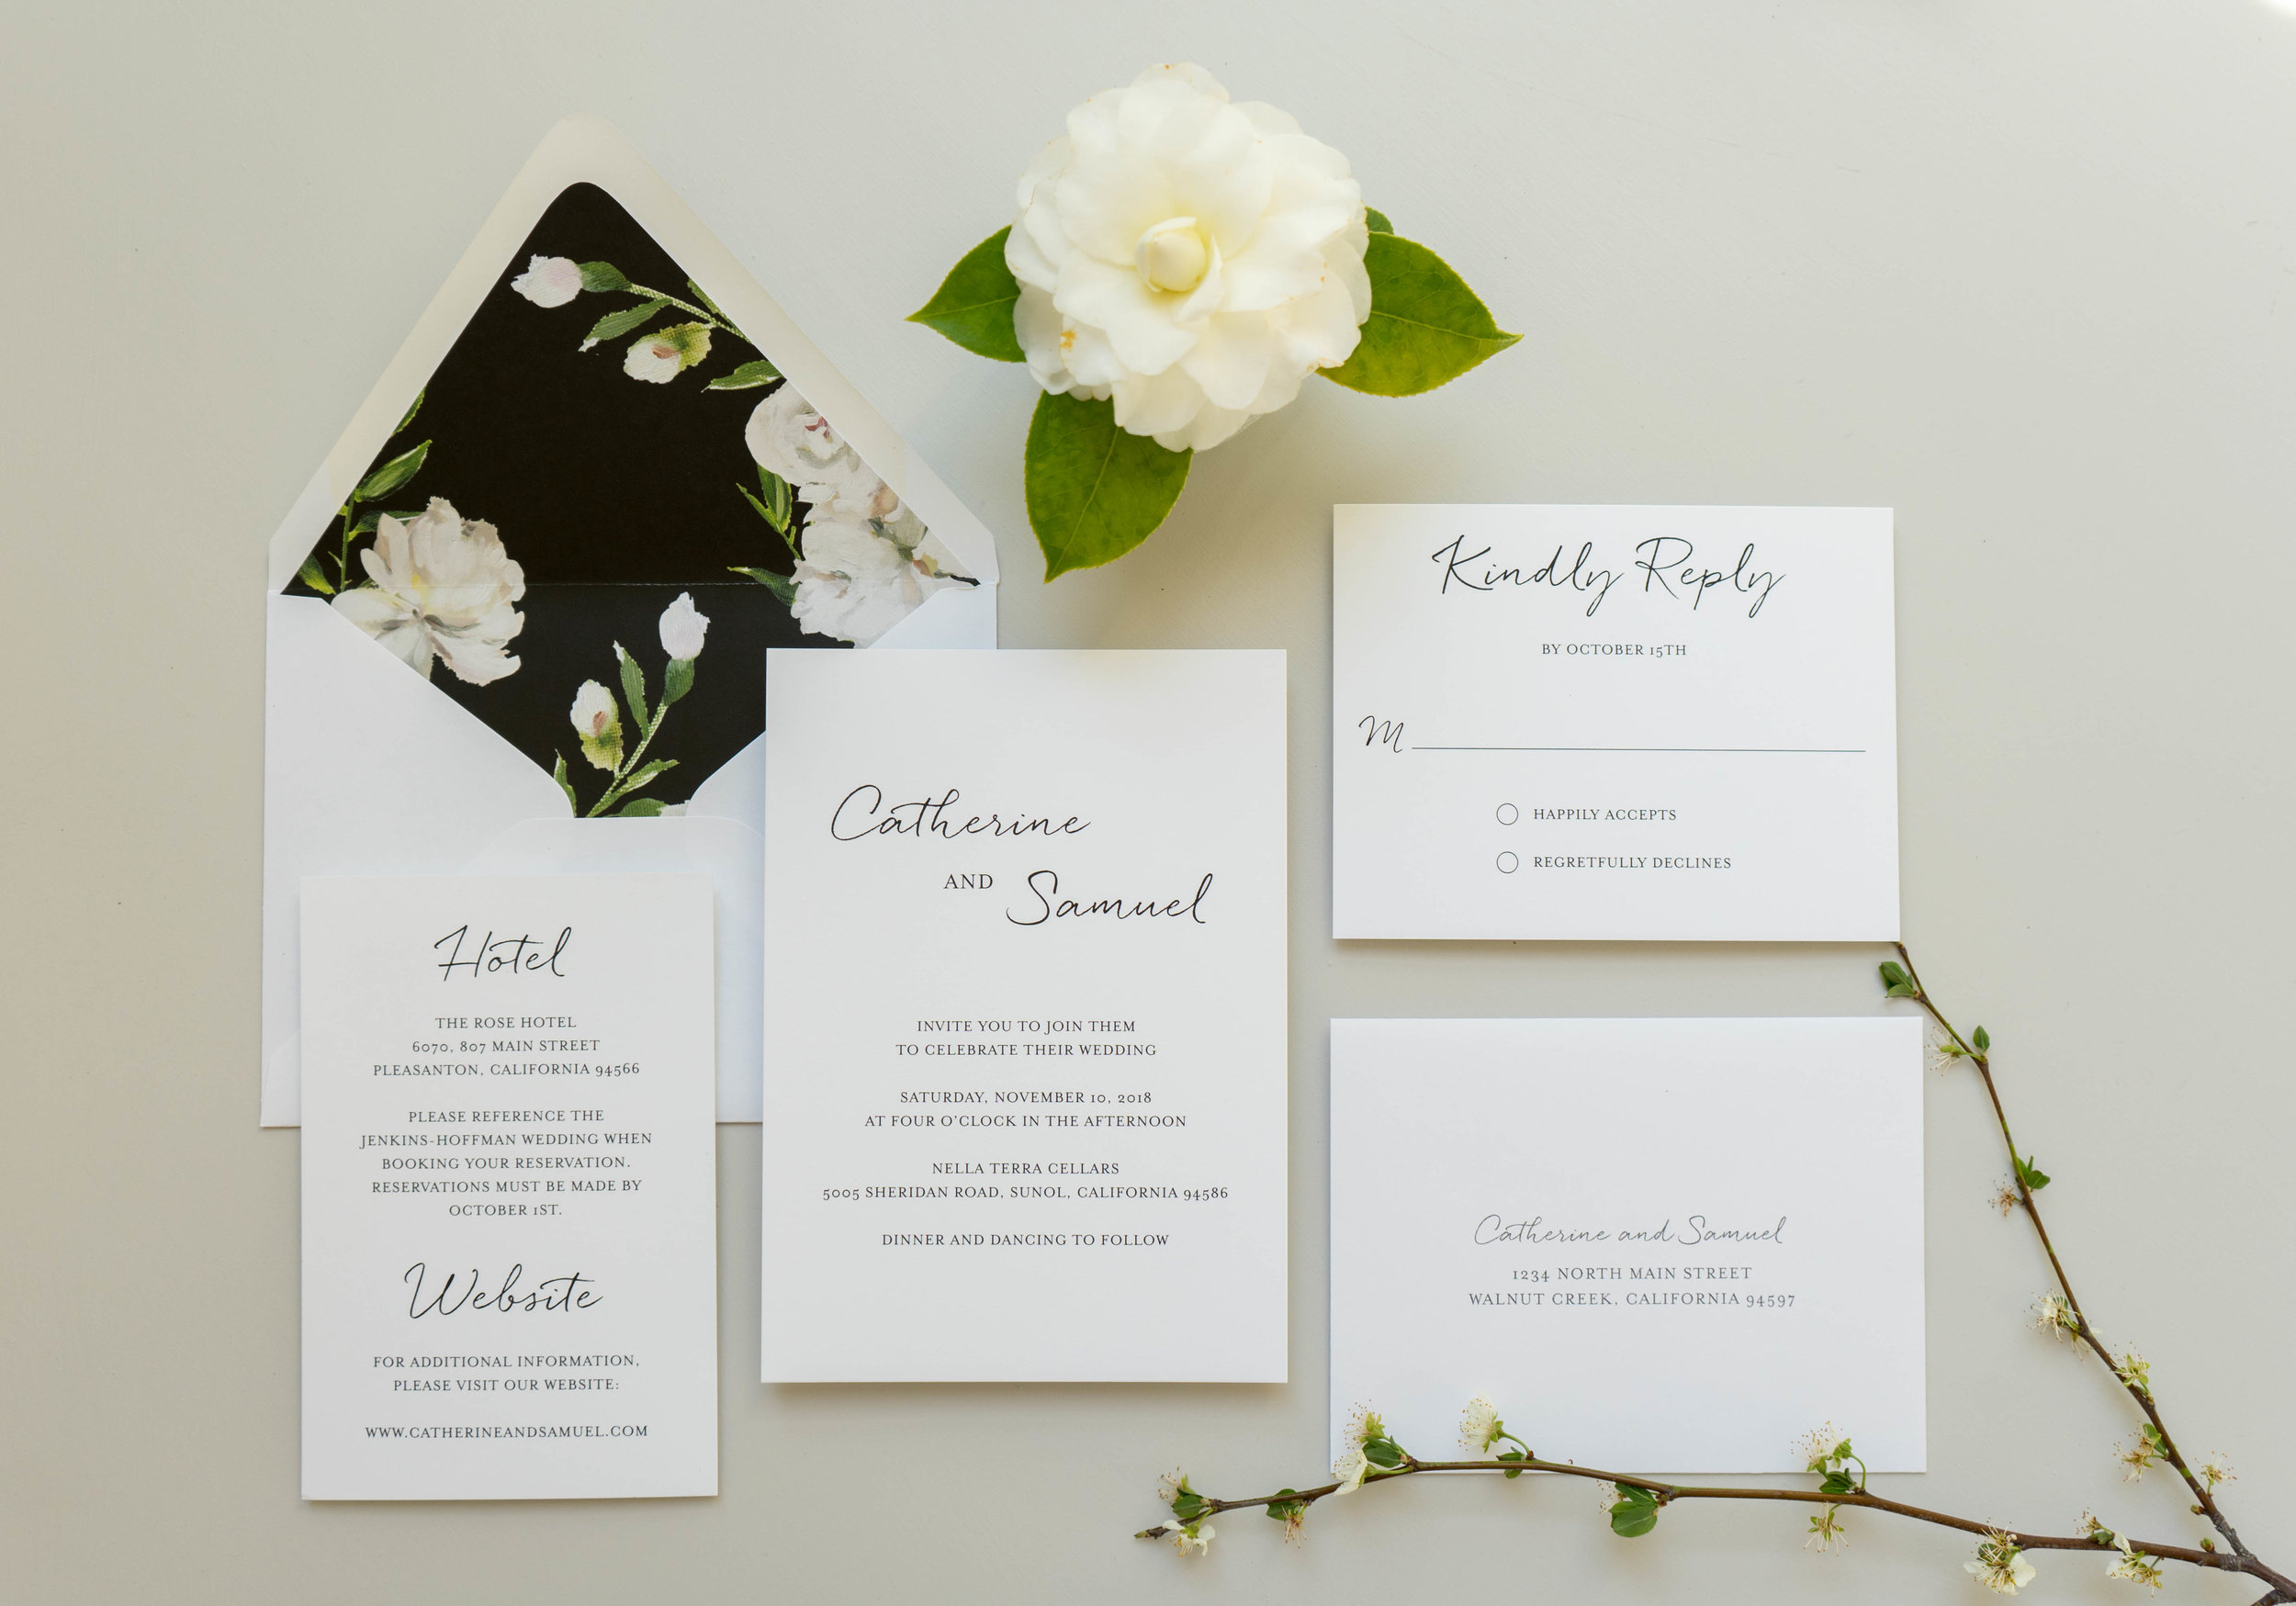 Black and White Floral Wedding Invitation by Just Jurf